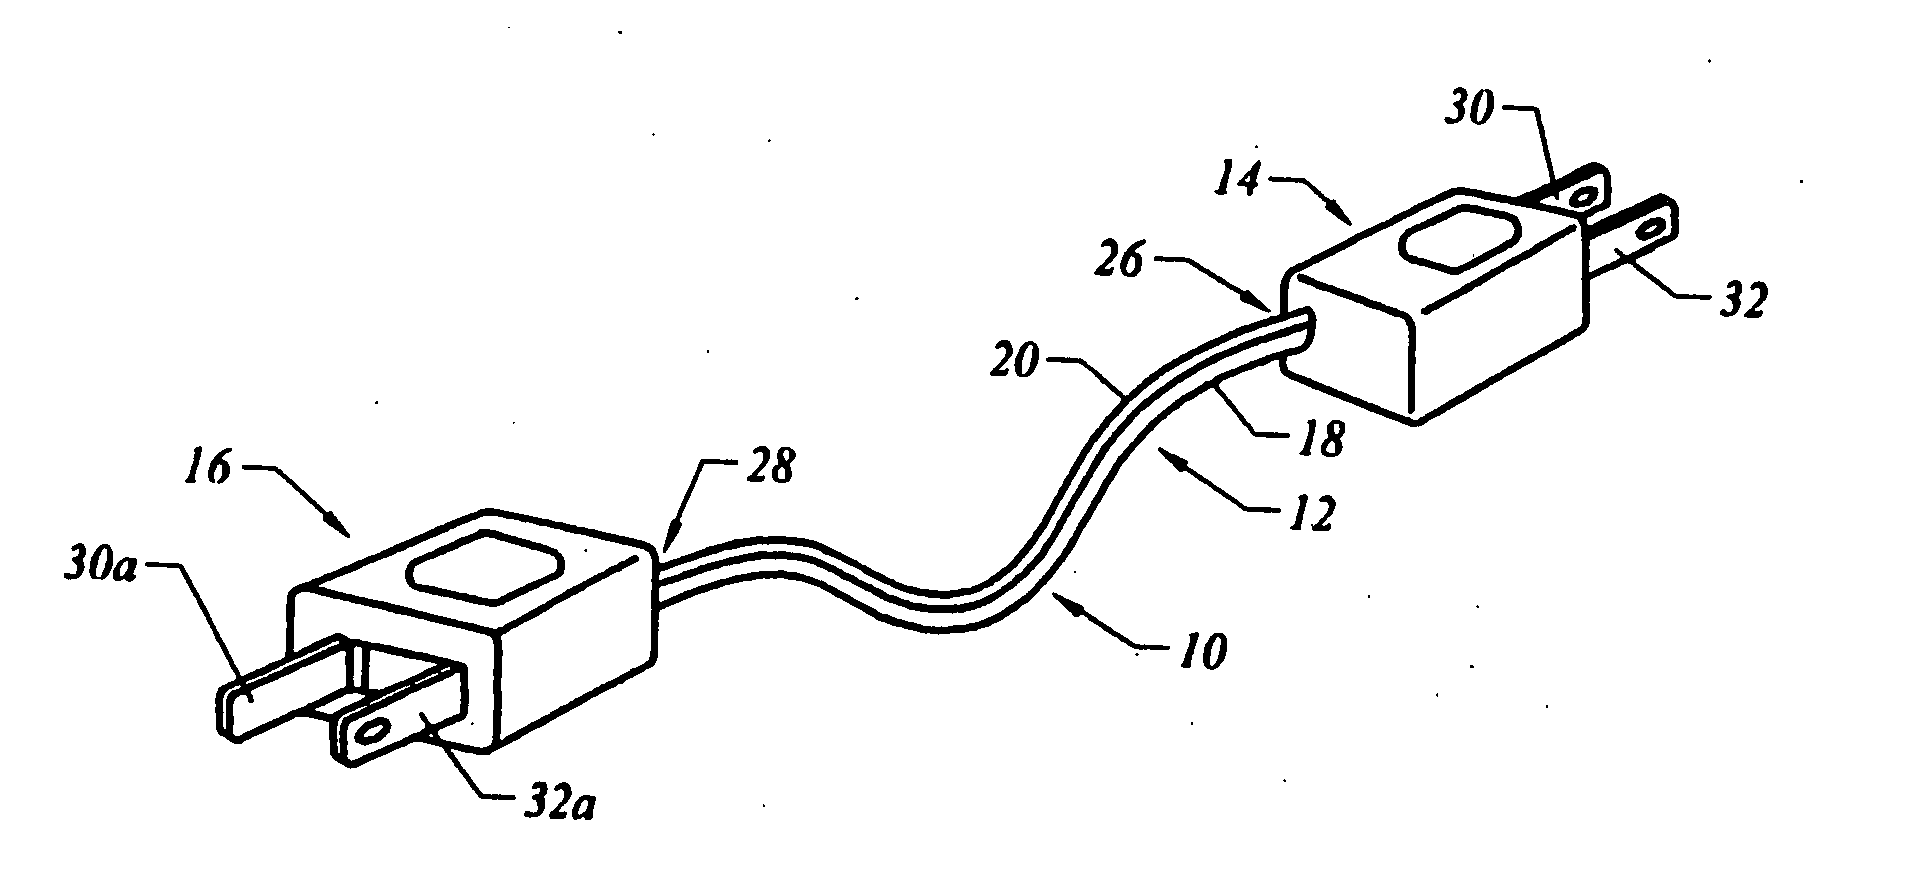 Plug Cord Retainer Unit Google Patents On Wiring Extension An Patent Us20060079111 Double Male Two Prong Electrical Connector Plugs